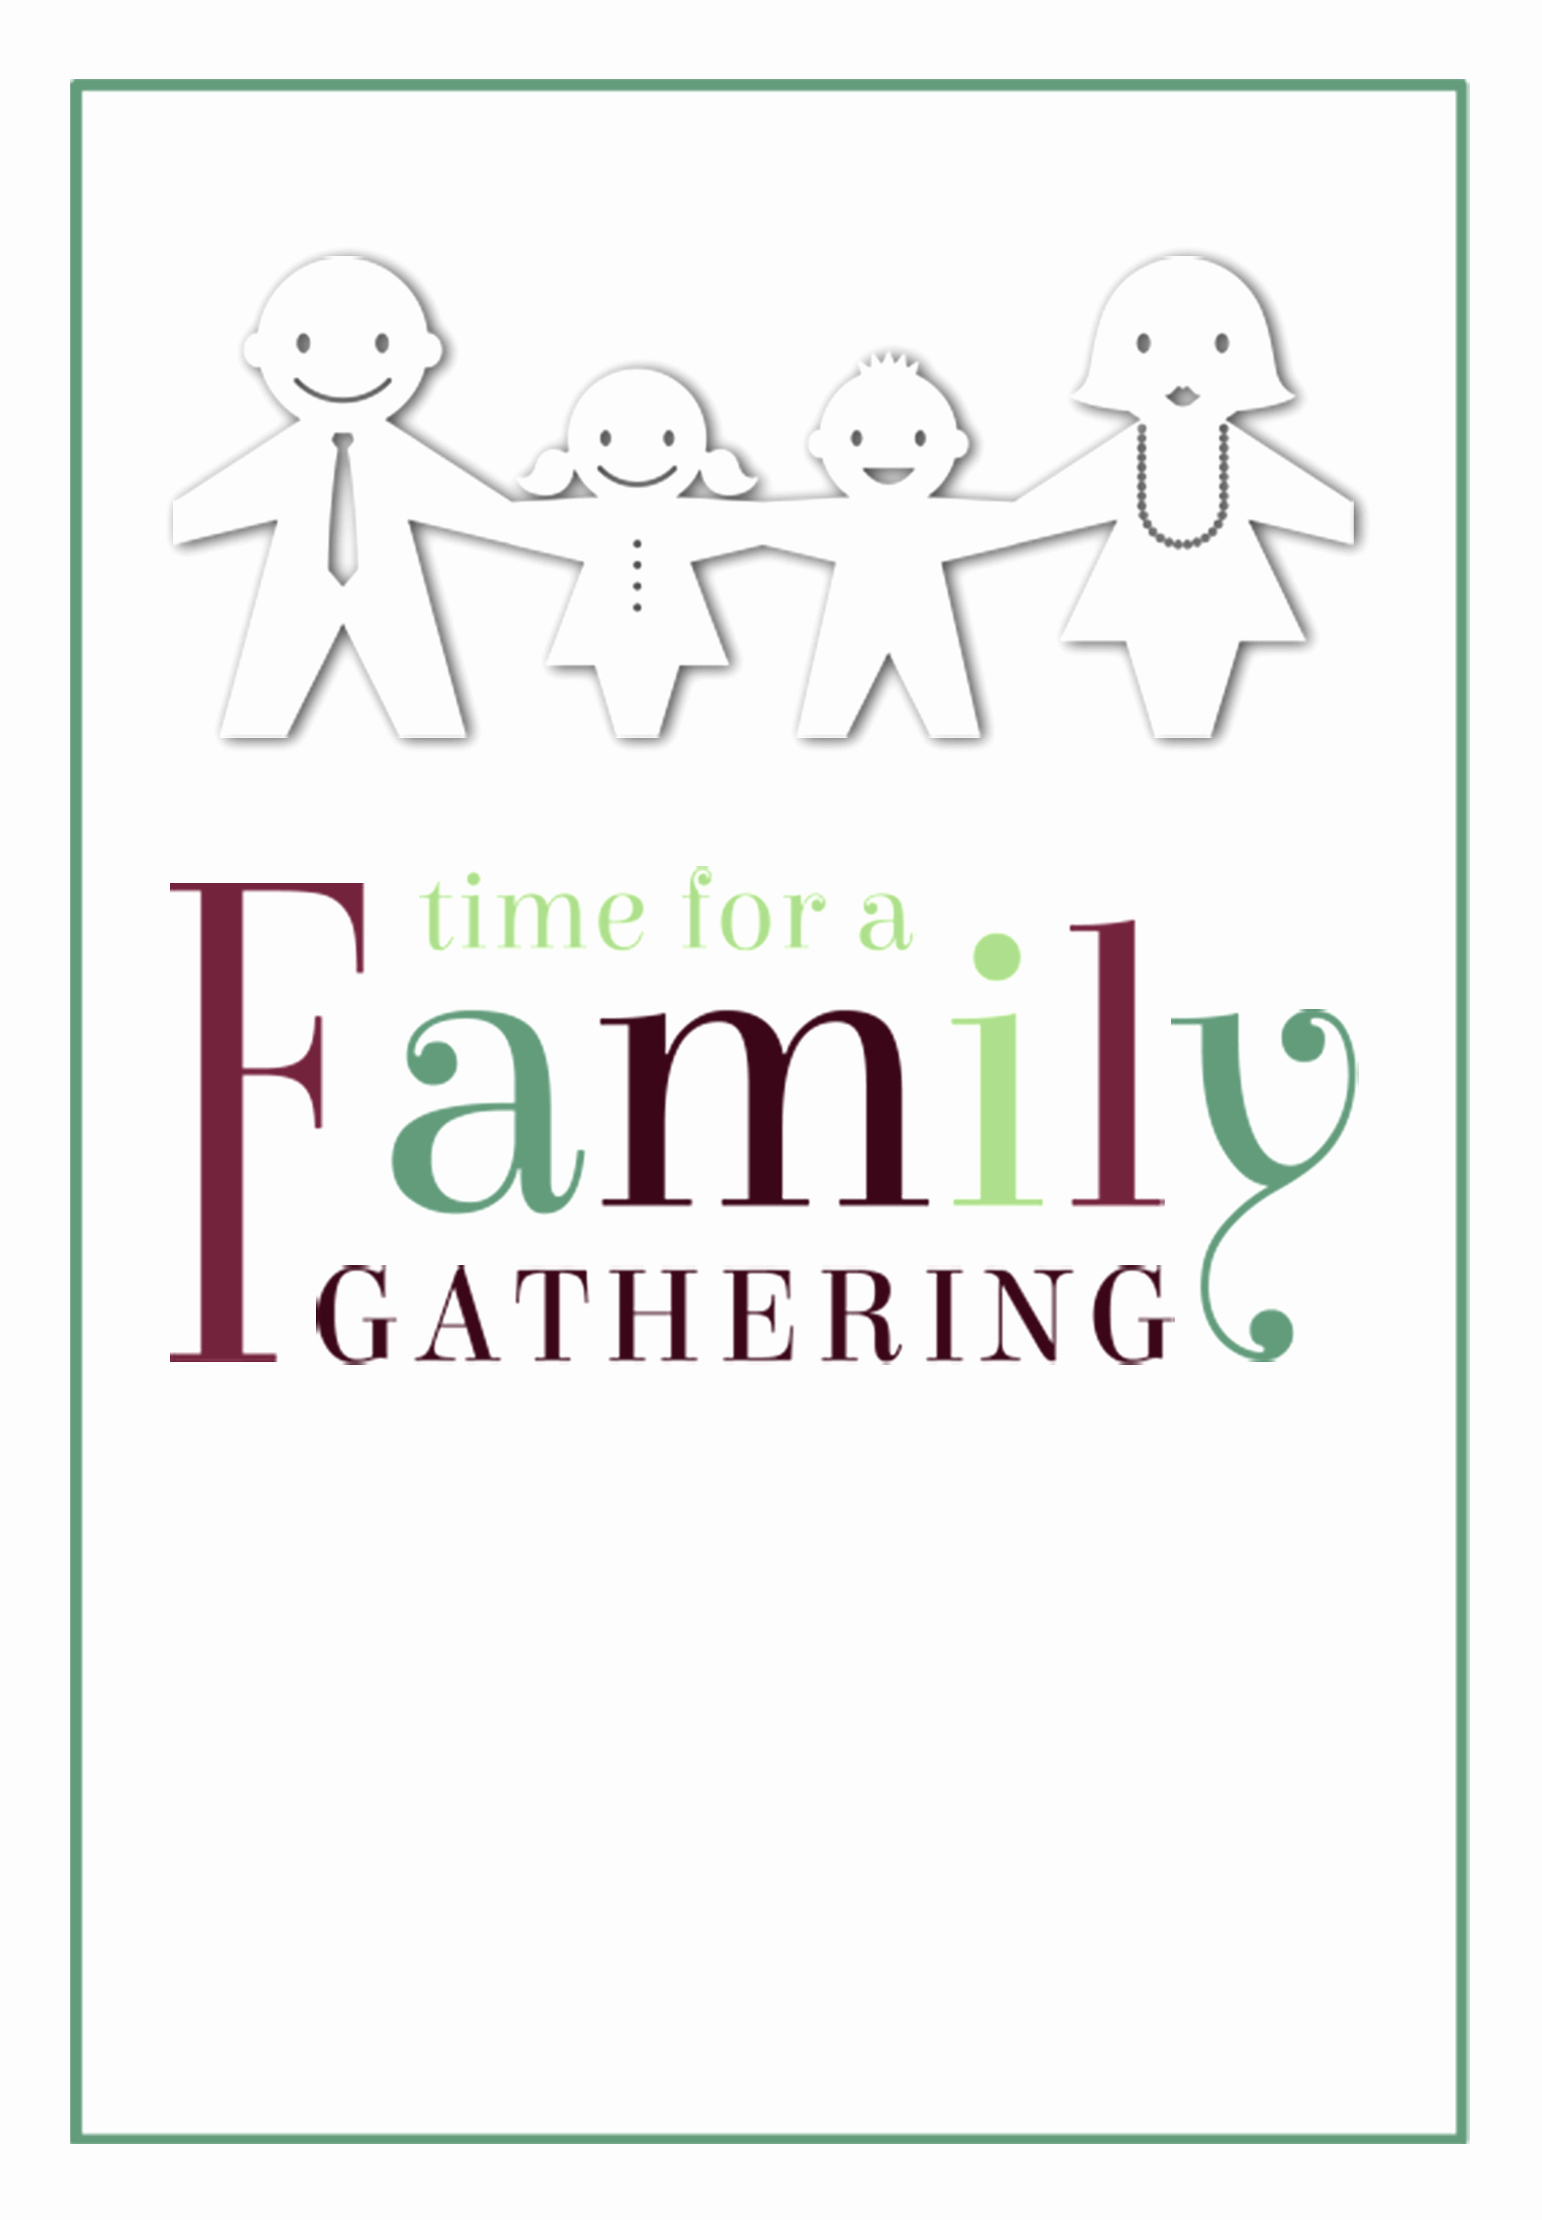 Family Reunion Invitations Templates Fresh Time for A Family Gathering Free Printable Family